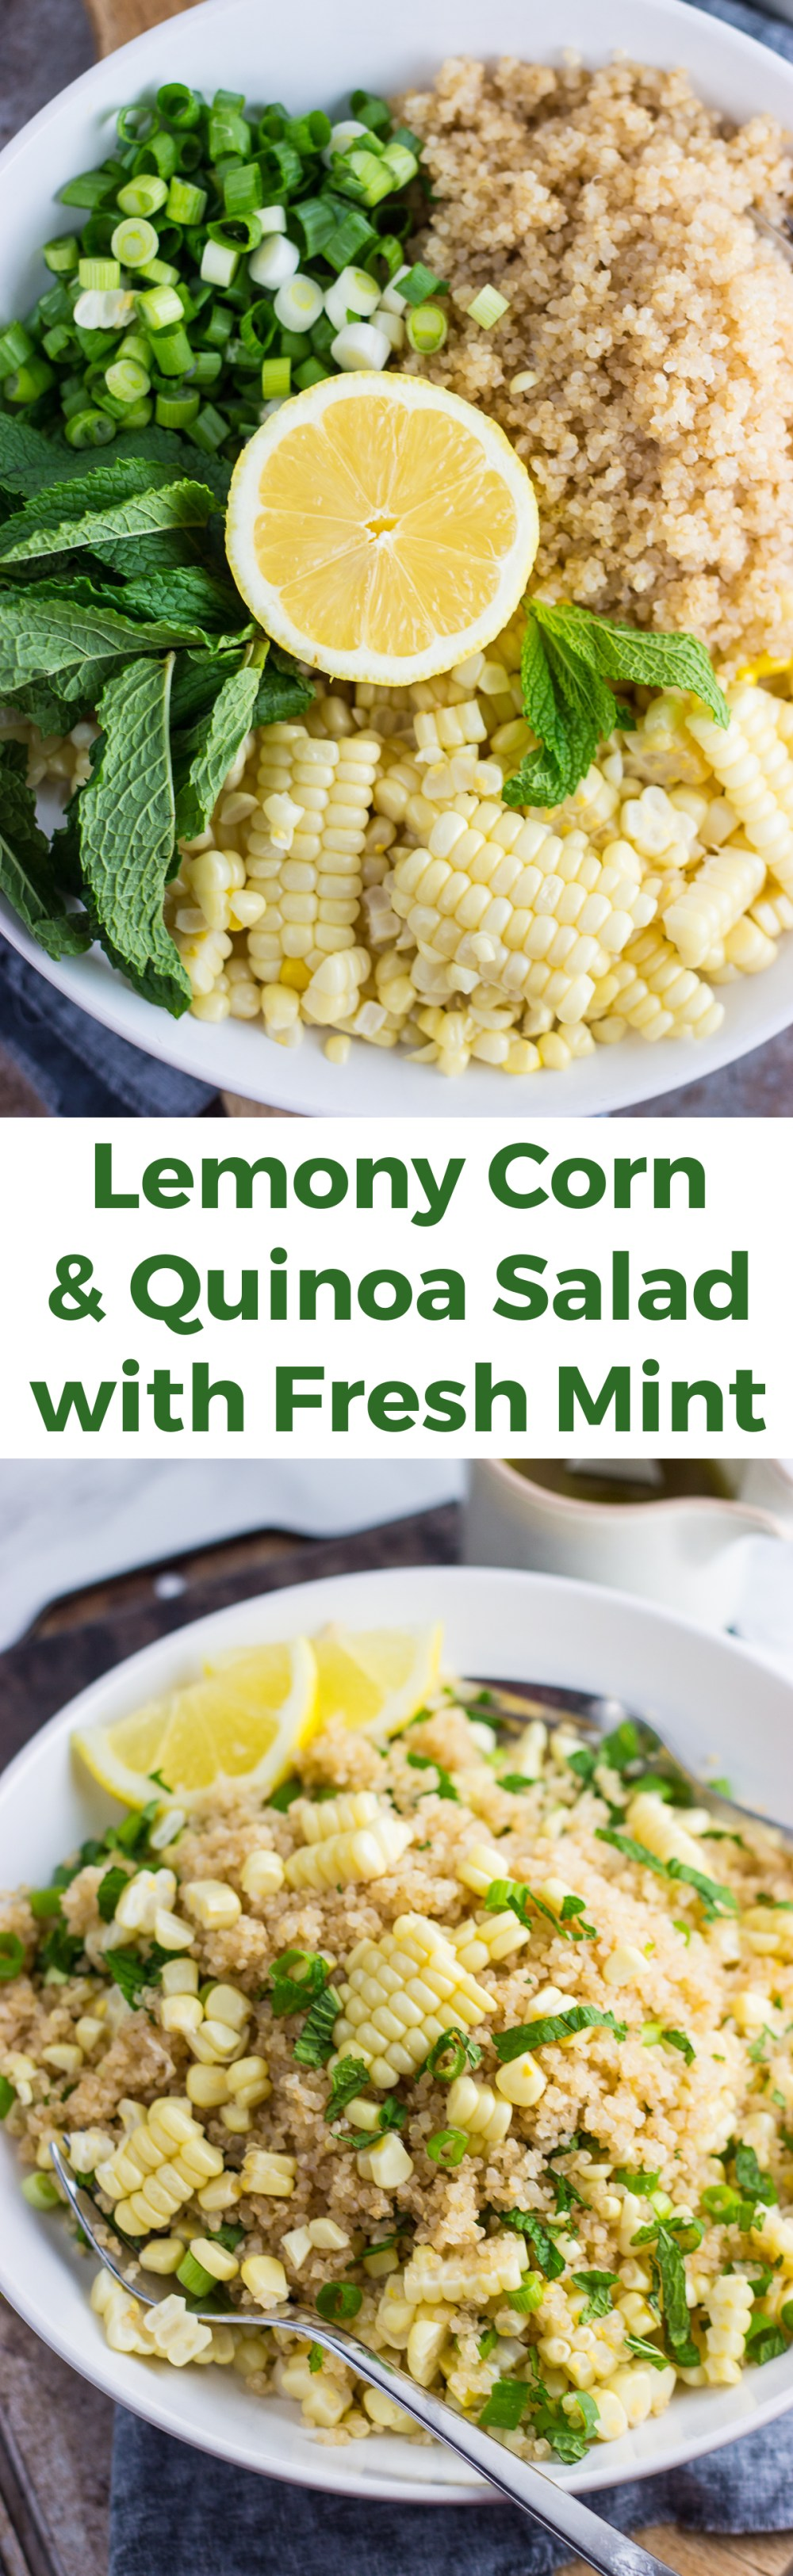 Lemony Corn and Quinoa Salad with Mint Recipe